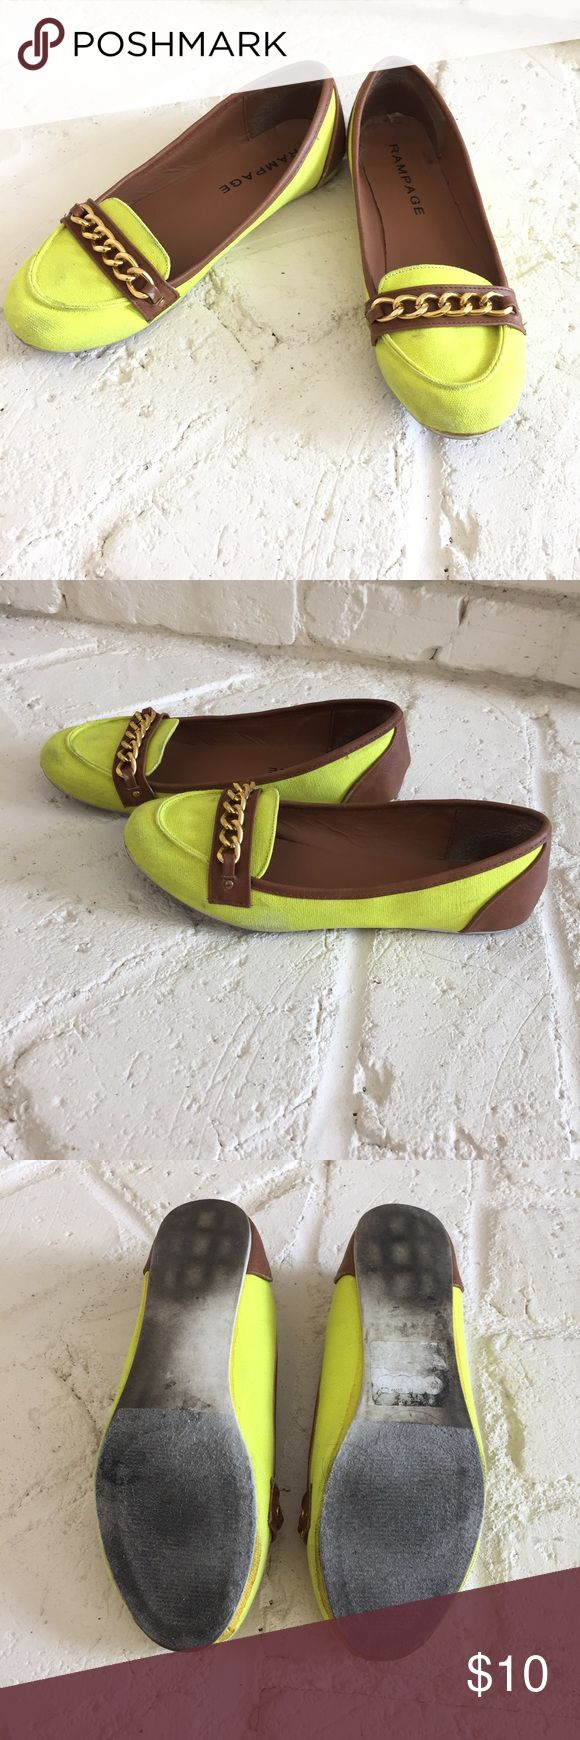 Neon Flats Make a statement with these neon yellow flats - yes, they are really that bright!  Wear to the beach or to the mall!  Canvas and outer faux leather have scuffing.  Feel free to make an offer!  BUNDLE this for extra savings! Rampage Shoes Flats & Loafers